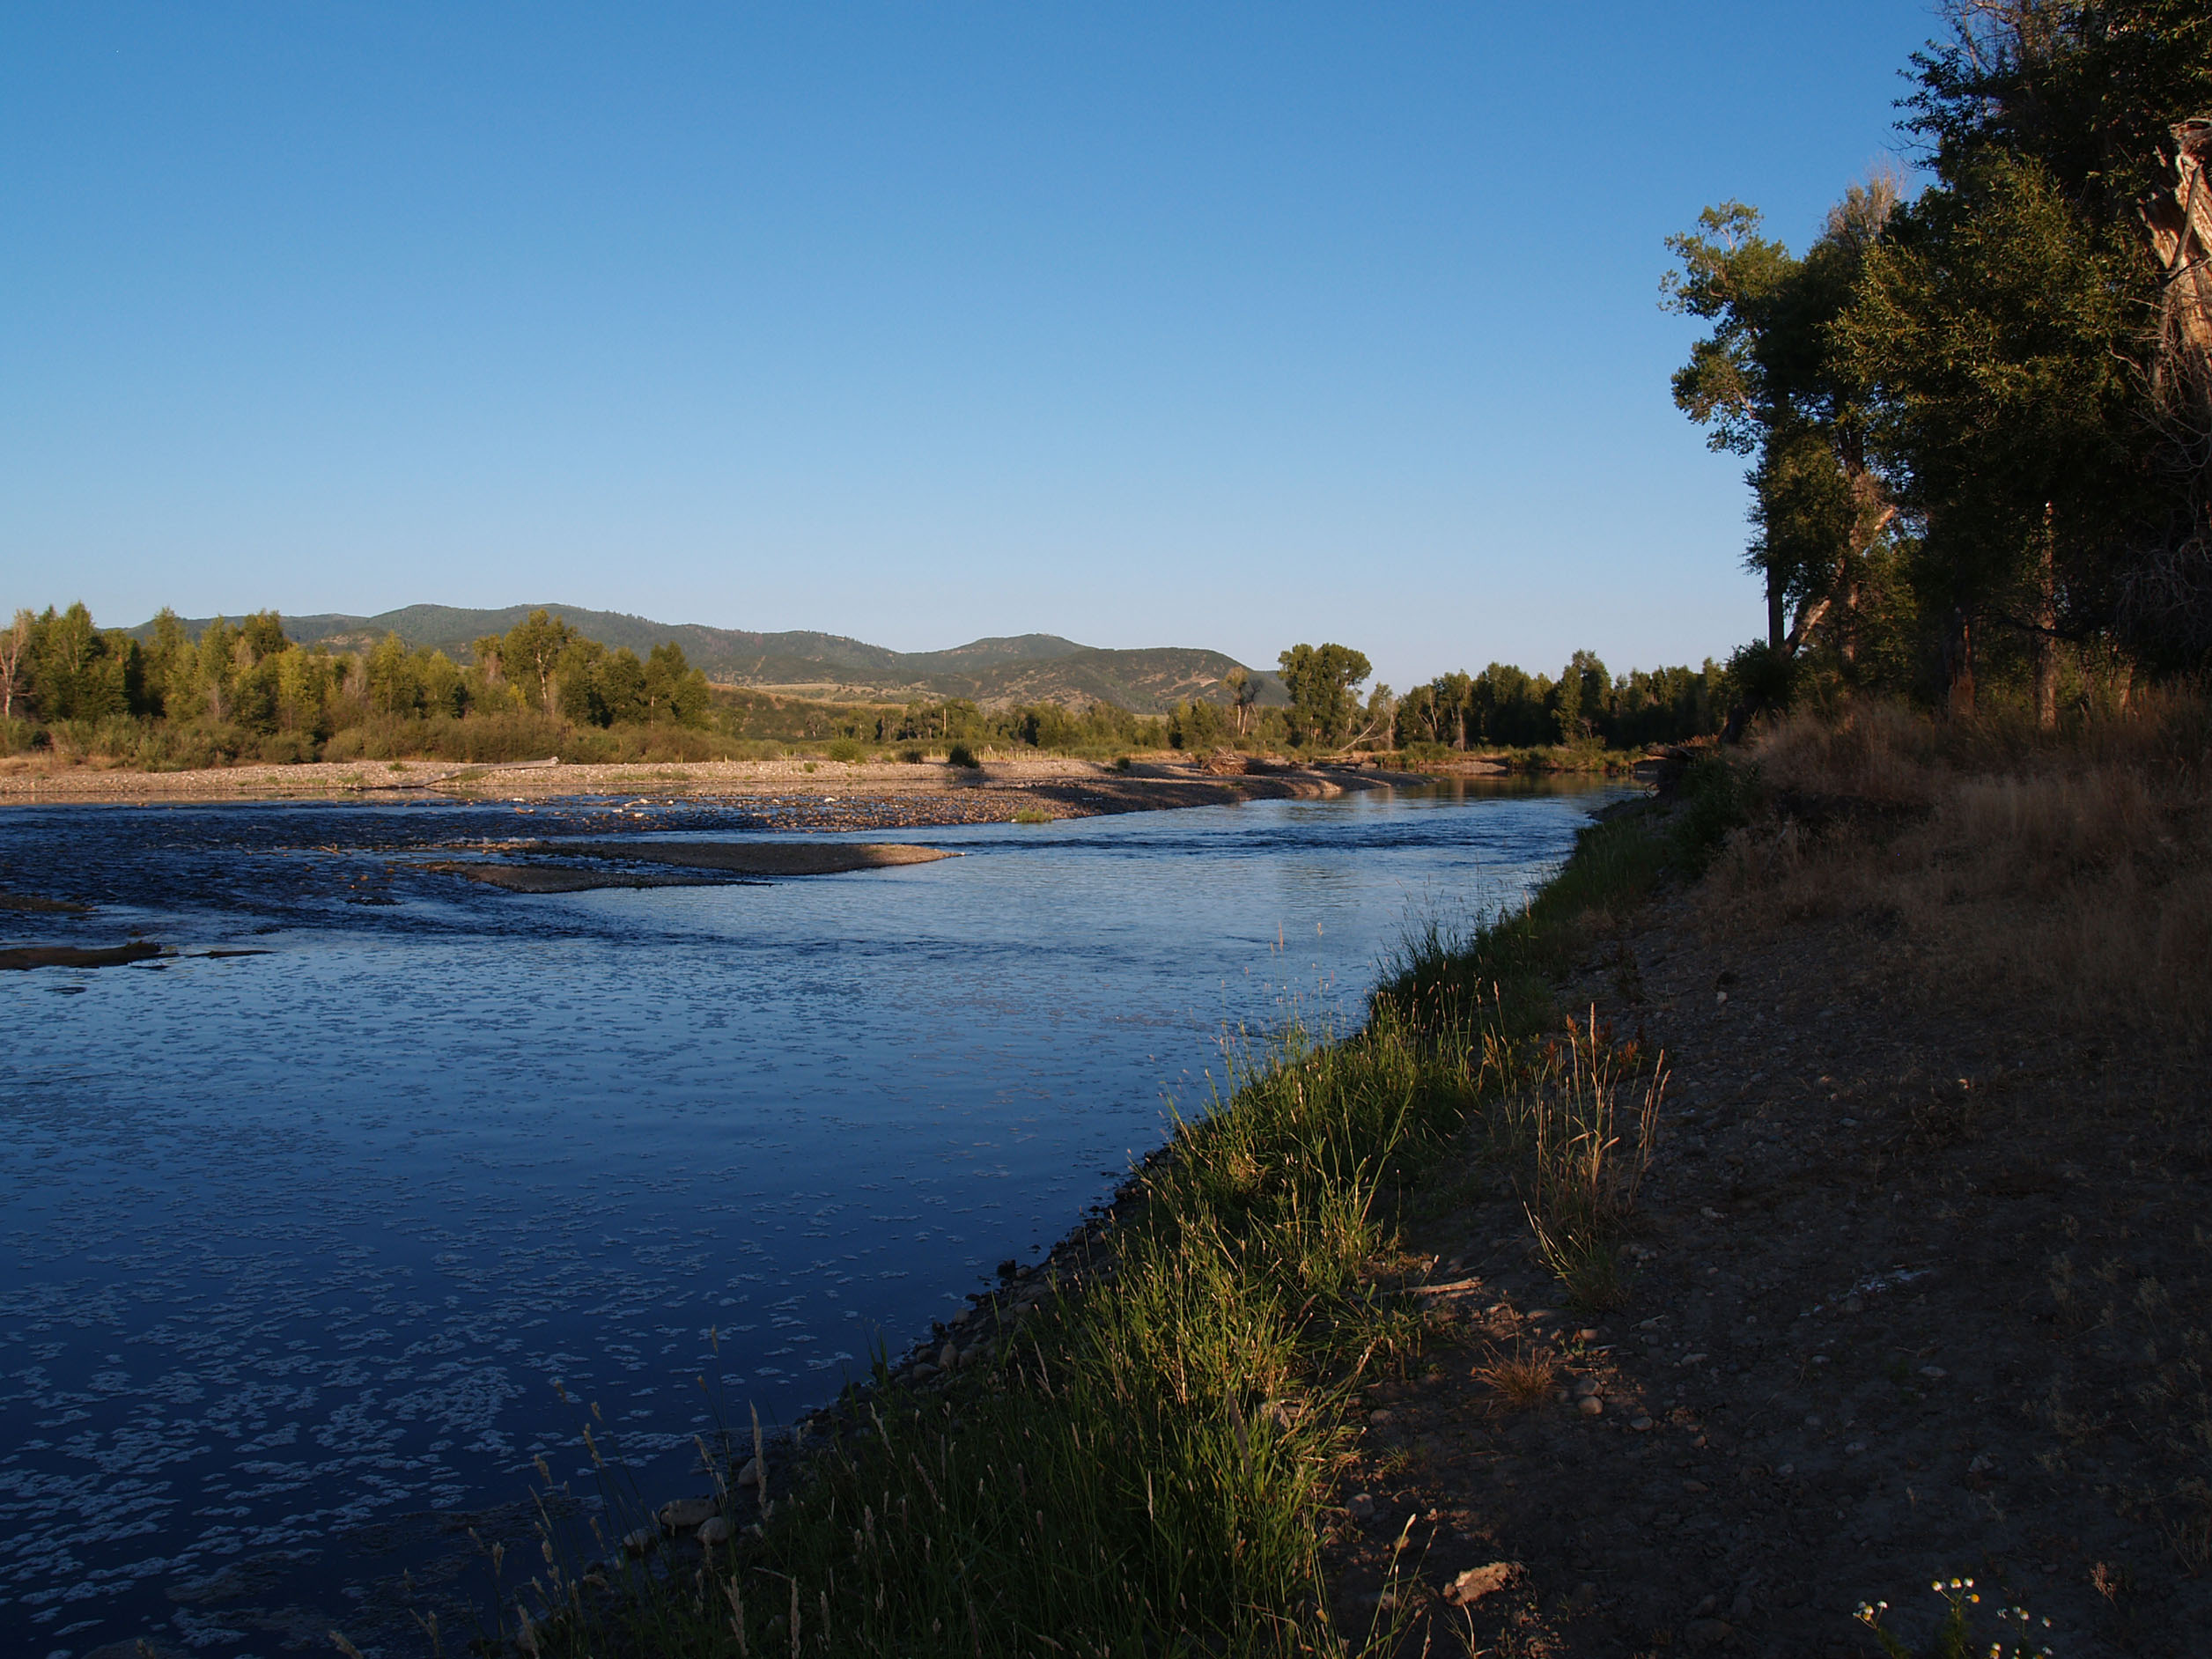 Yampa River - Camilletti Ranch